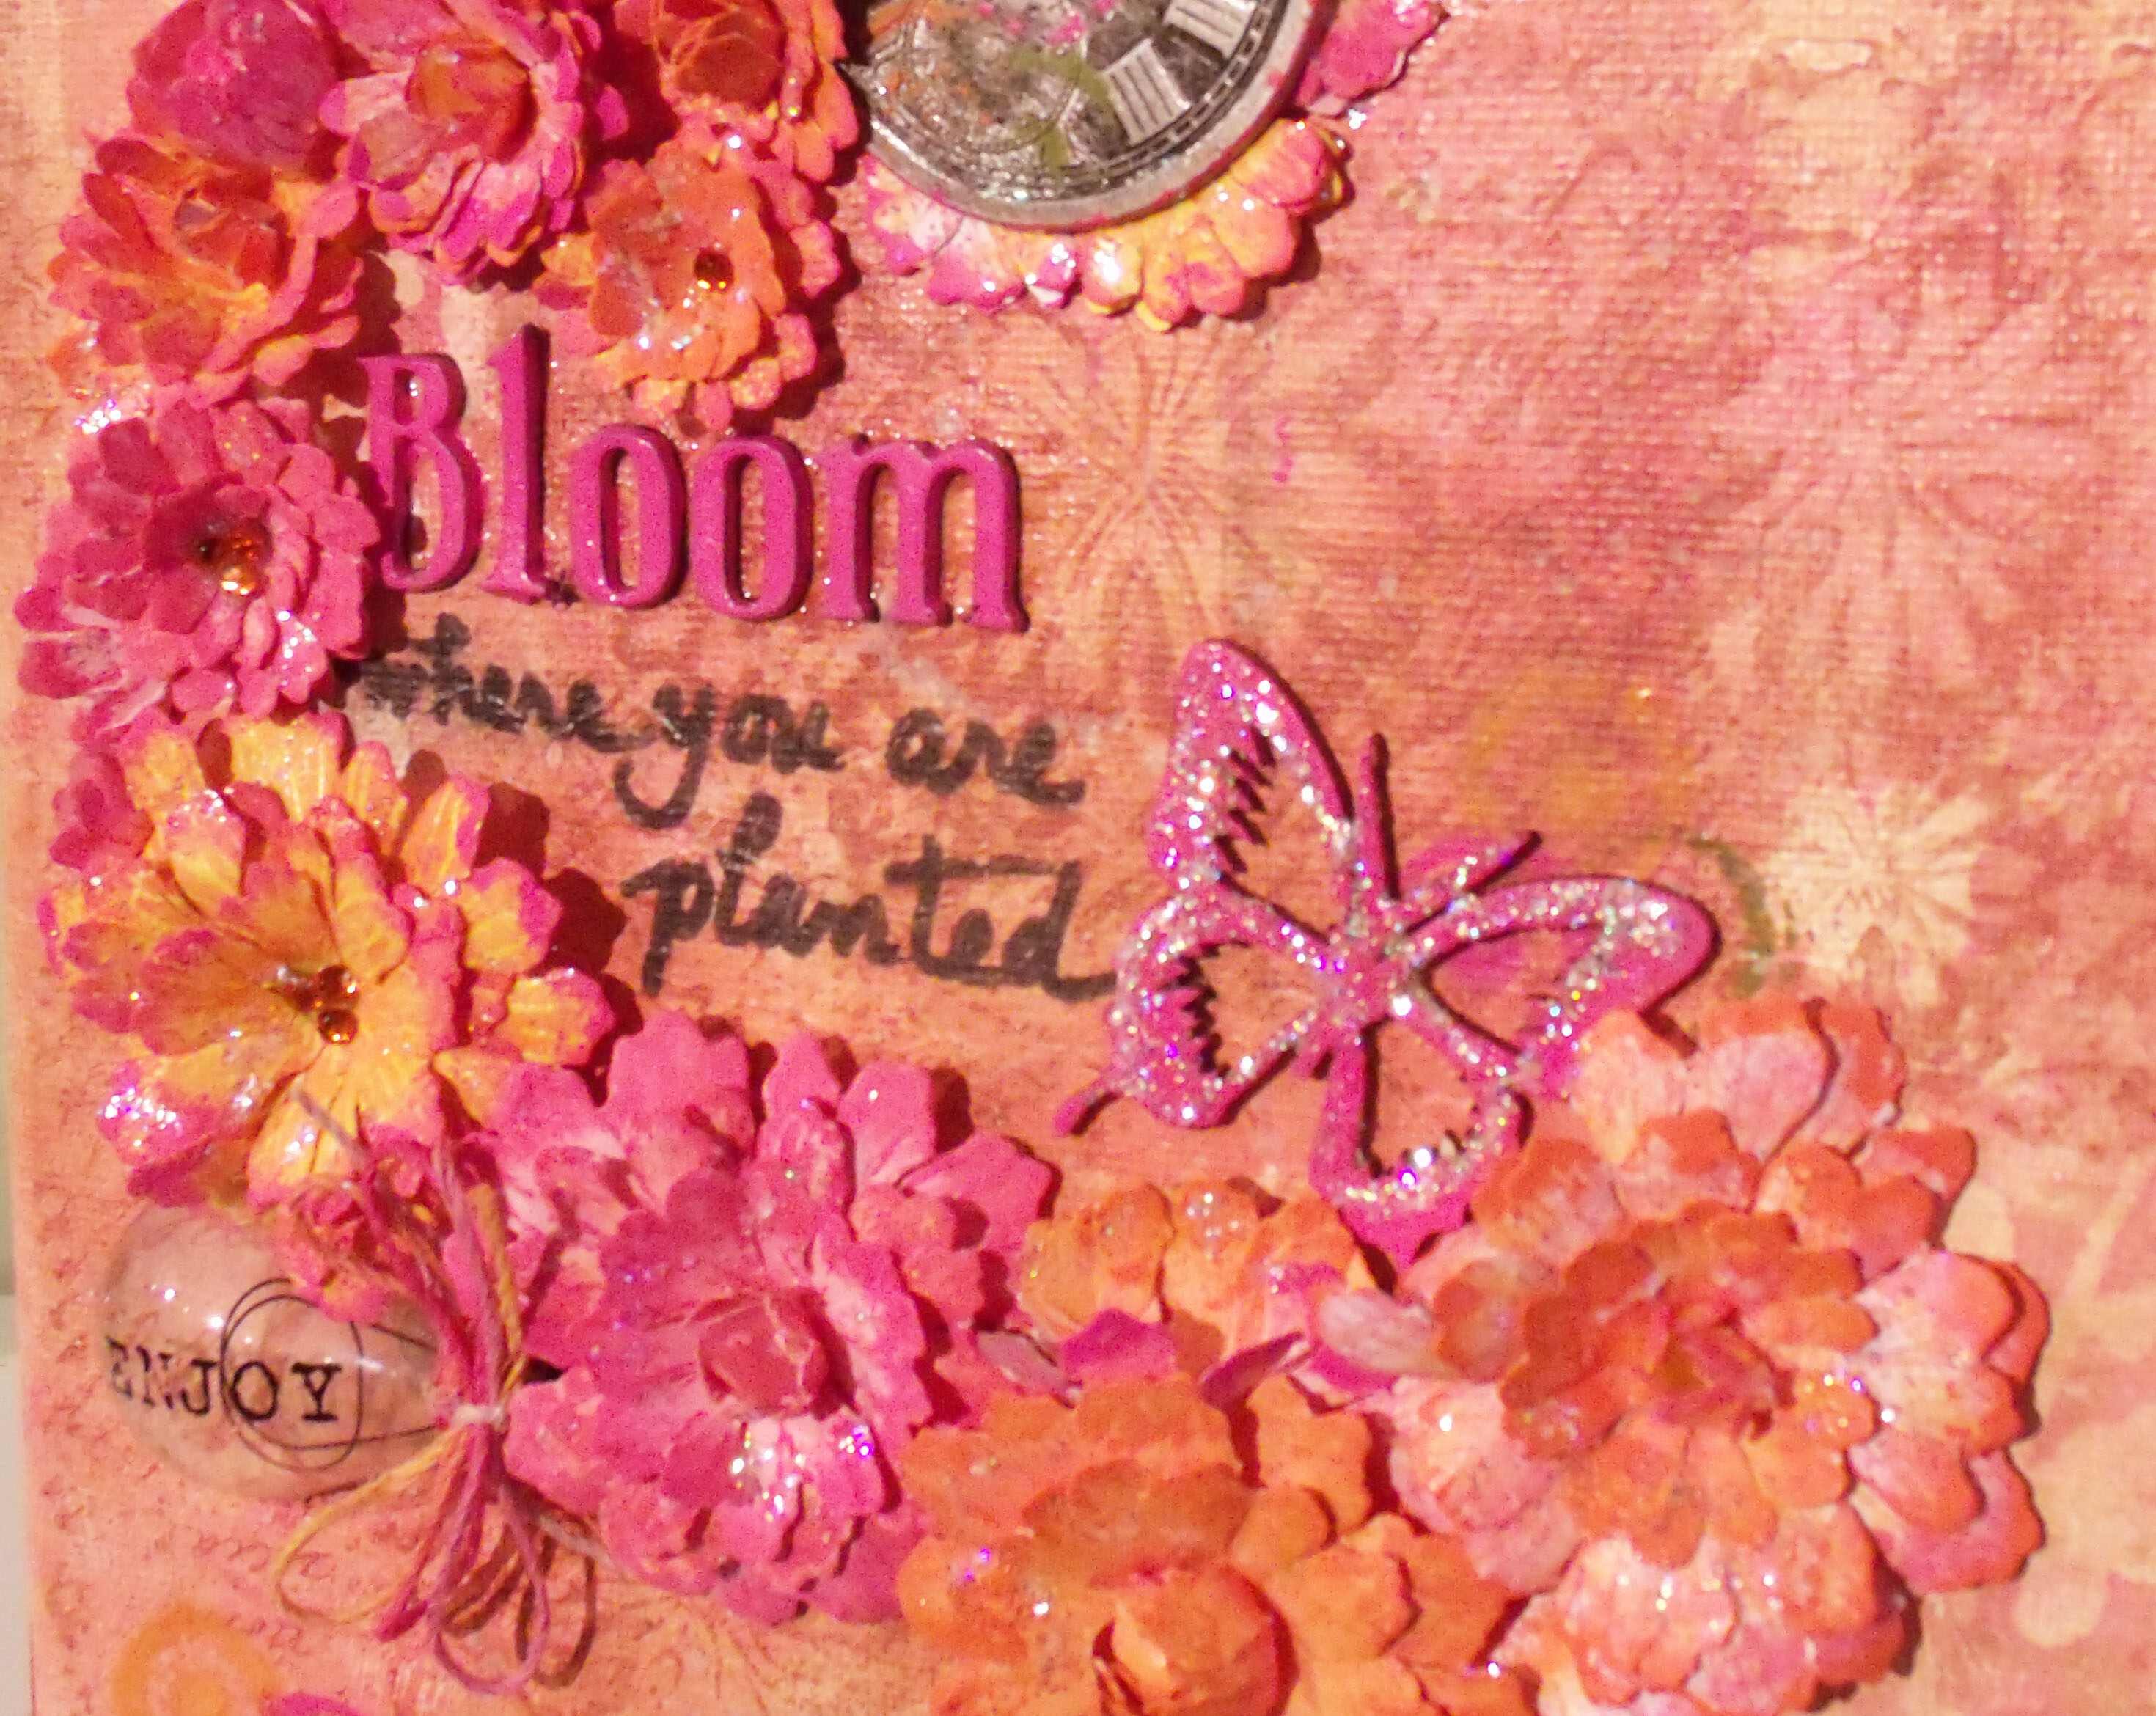 Bloom Where You are Planted Mixed Media Canvas